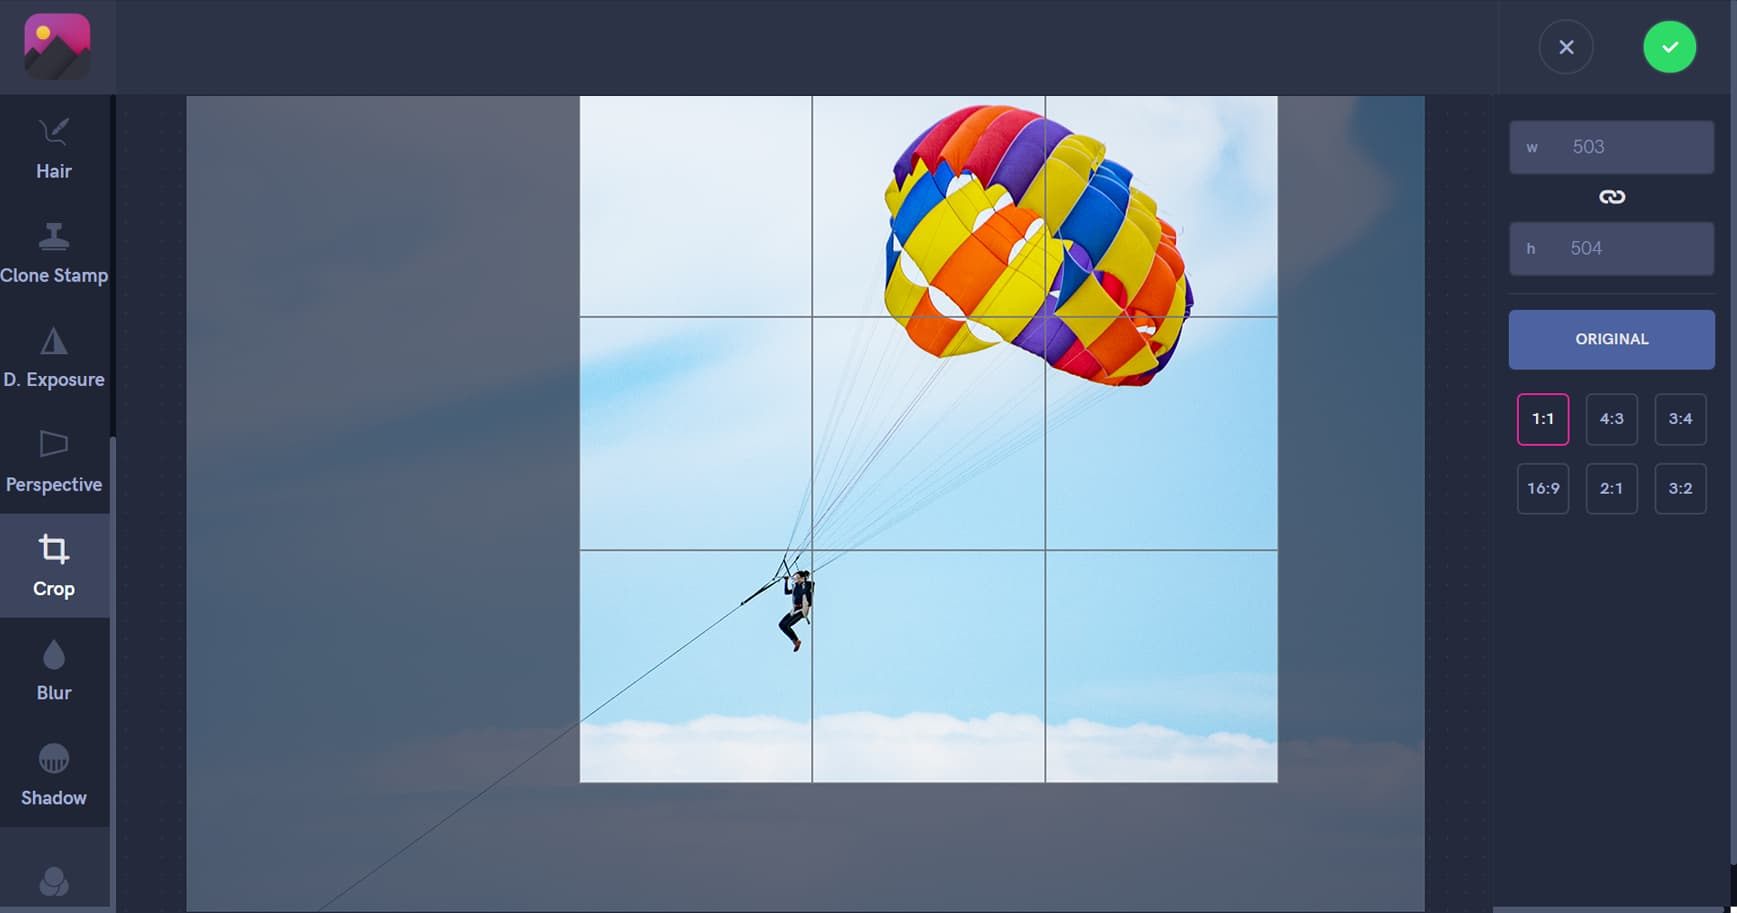 Crop photo, square photo, paragliding, crop ratio, crop square, screenshot